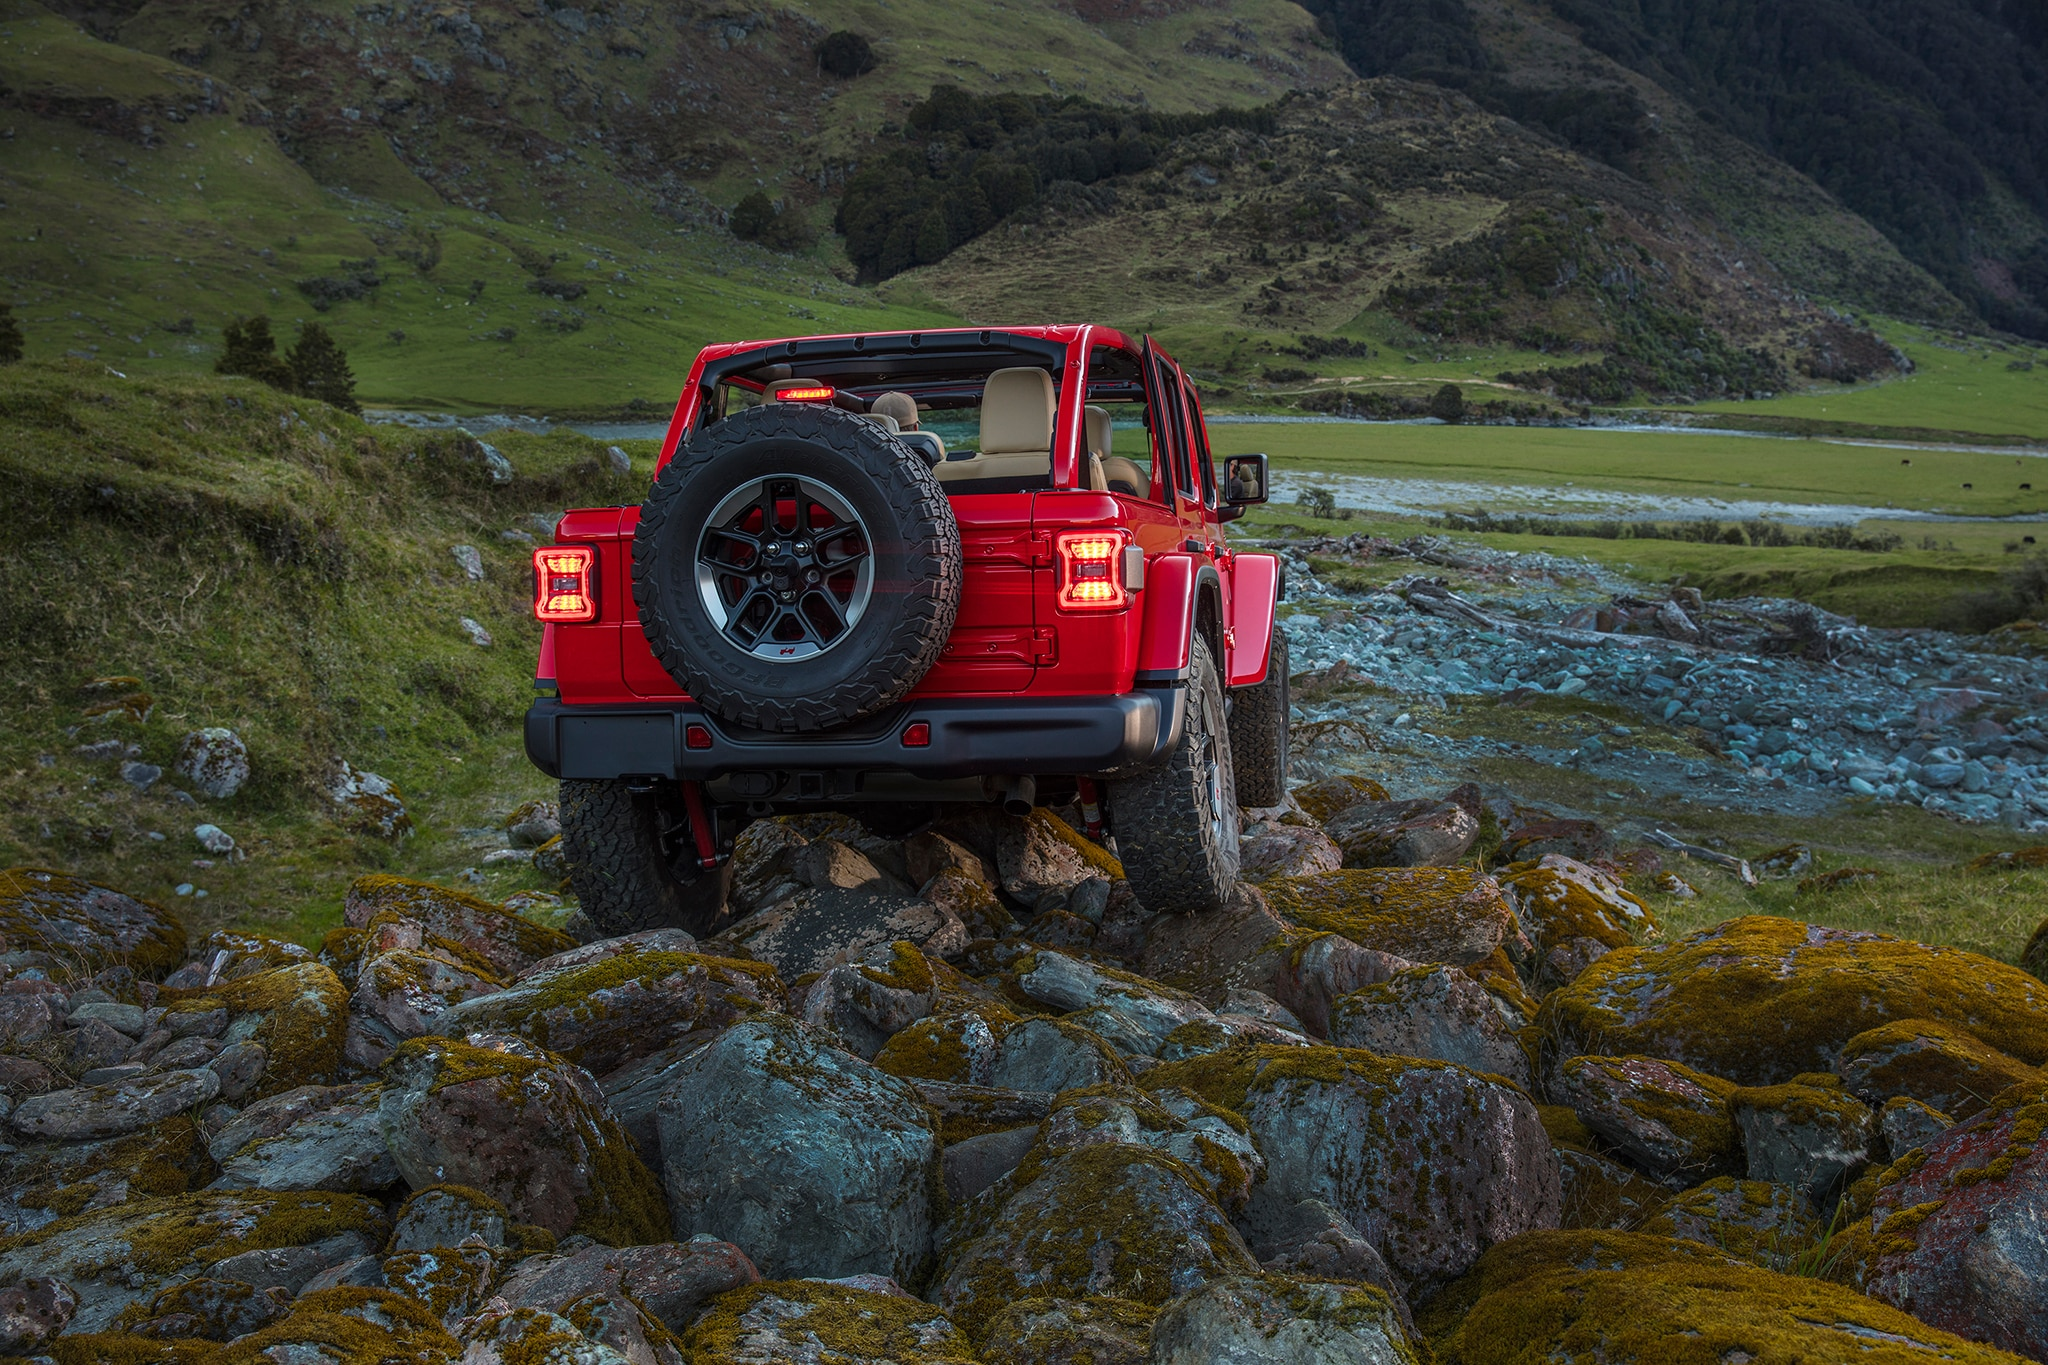 2018 Jeep Wrangler Rubicon First Drive Review | Automobile